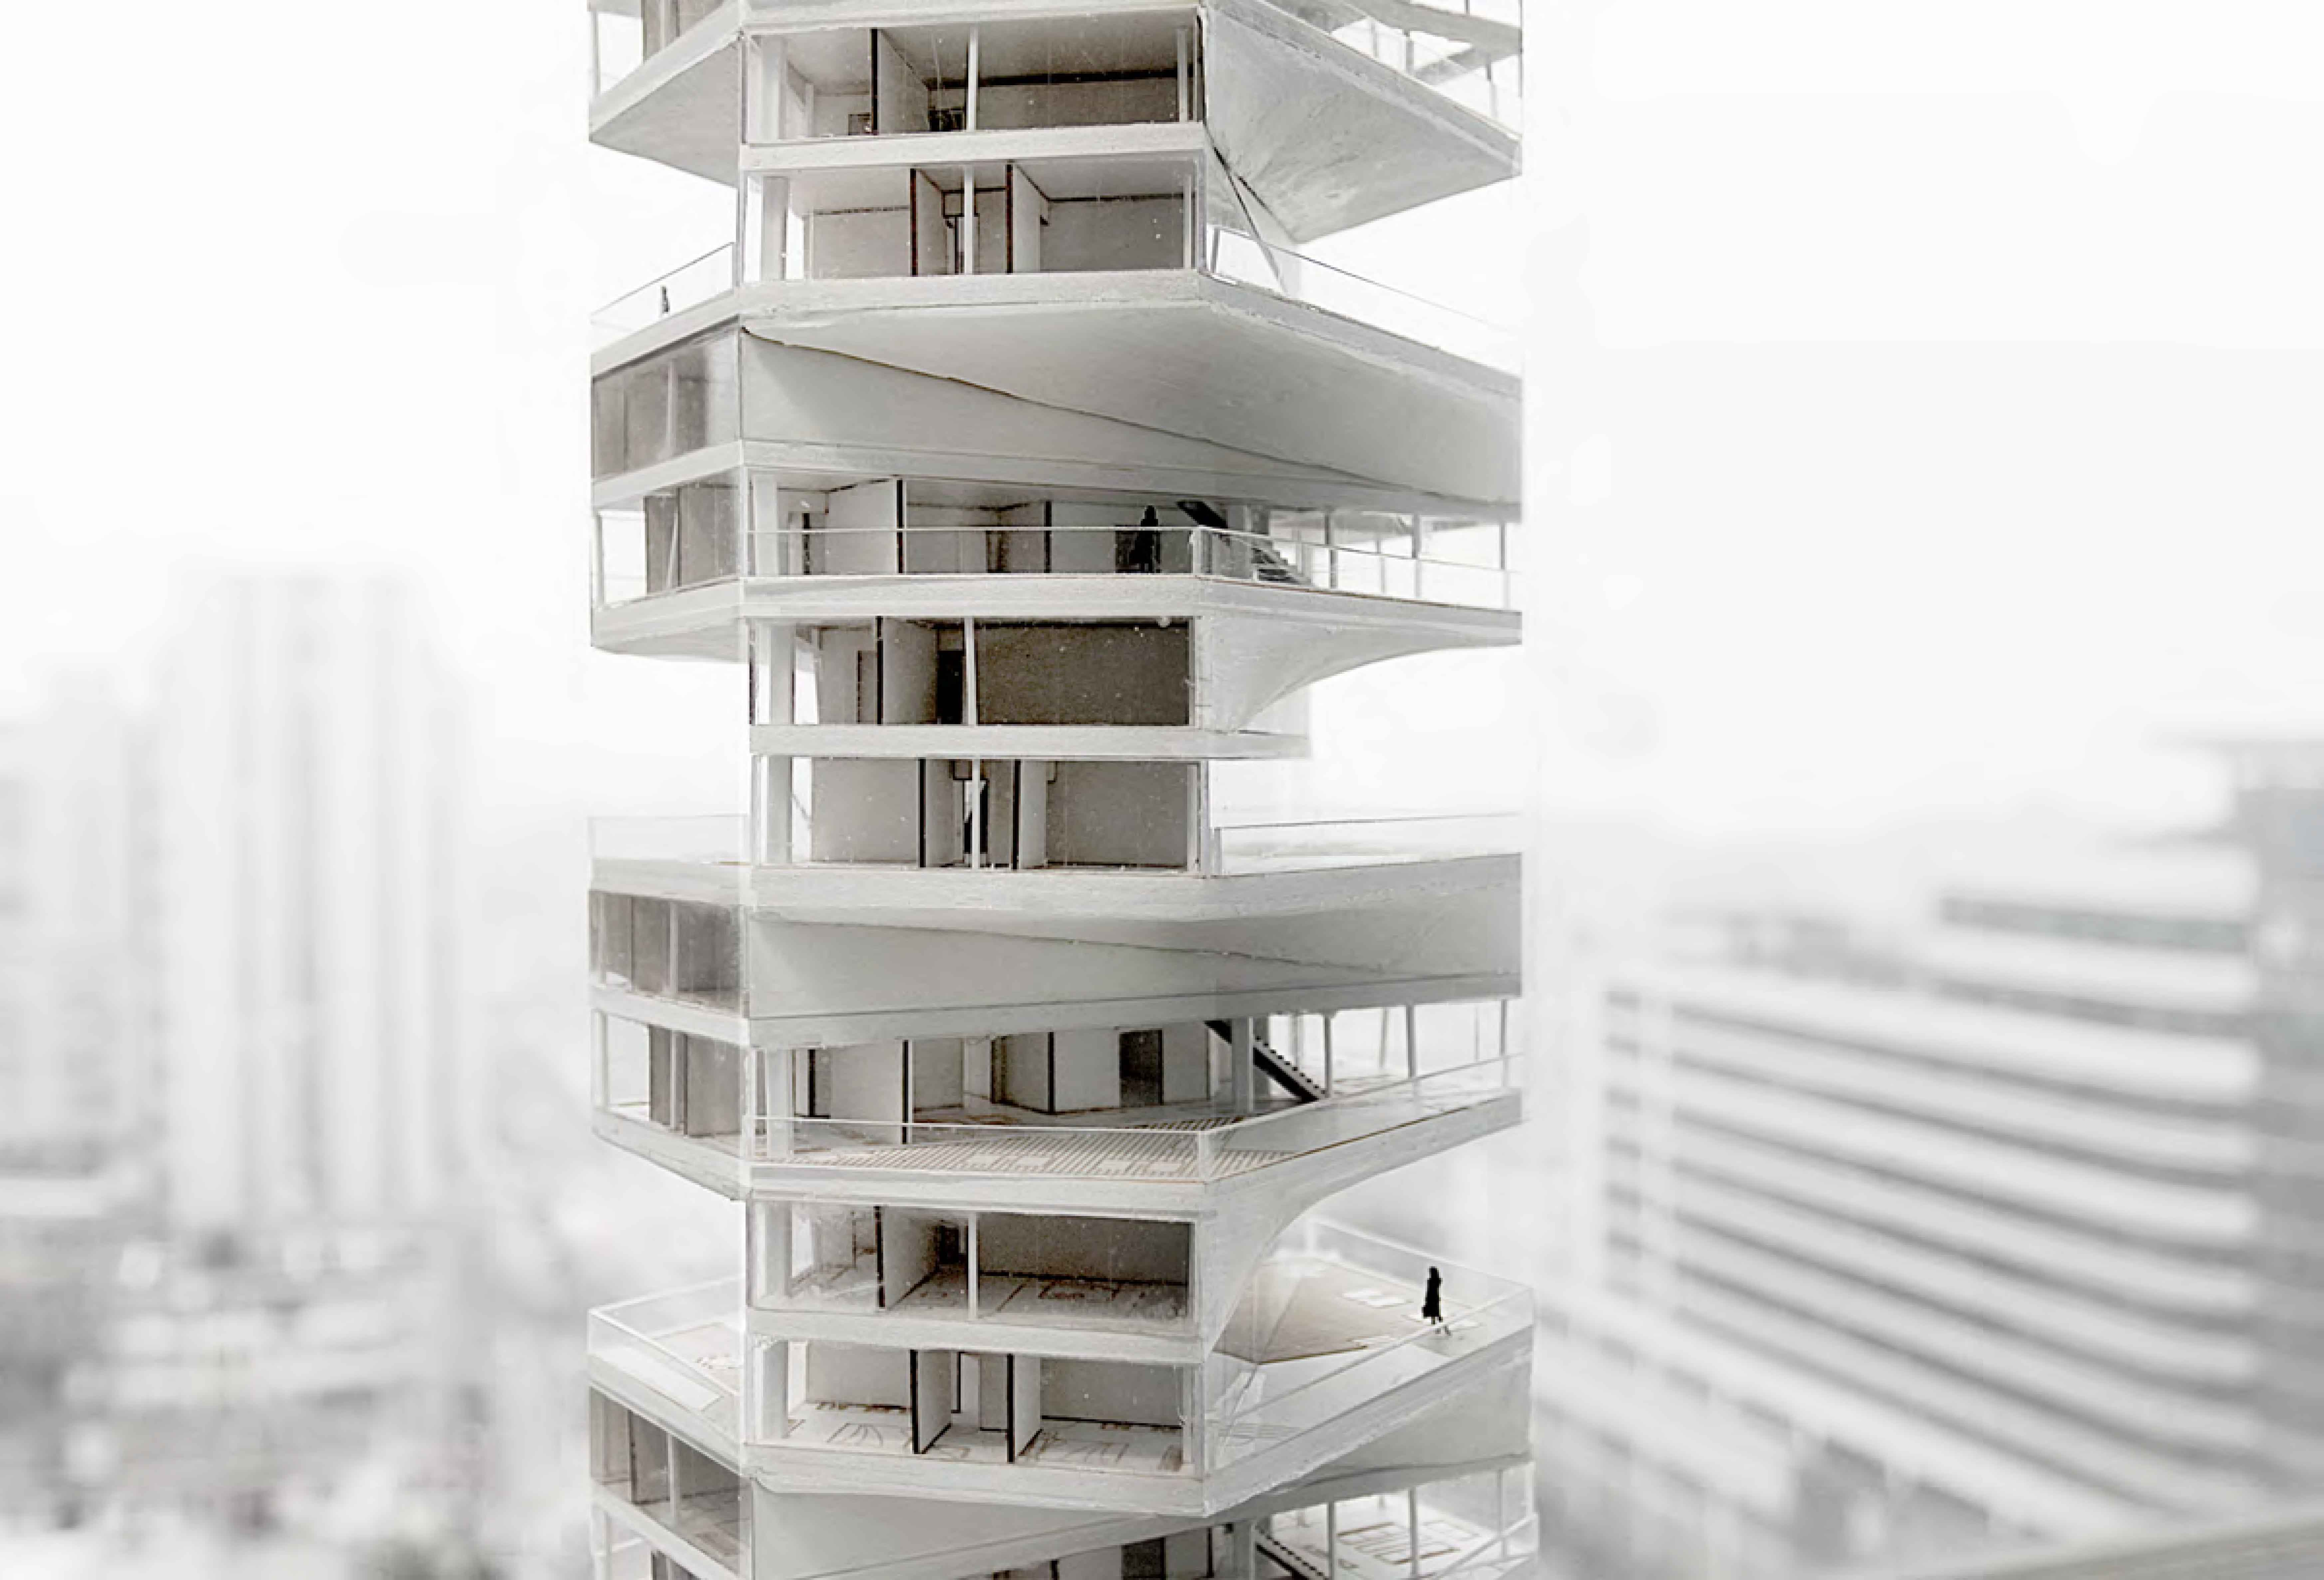 Architecture Photography: Writhing Tower (